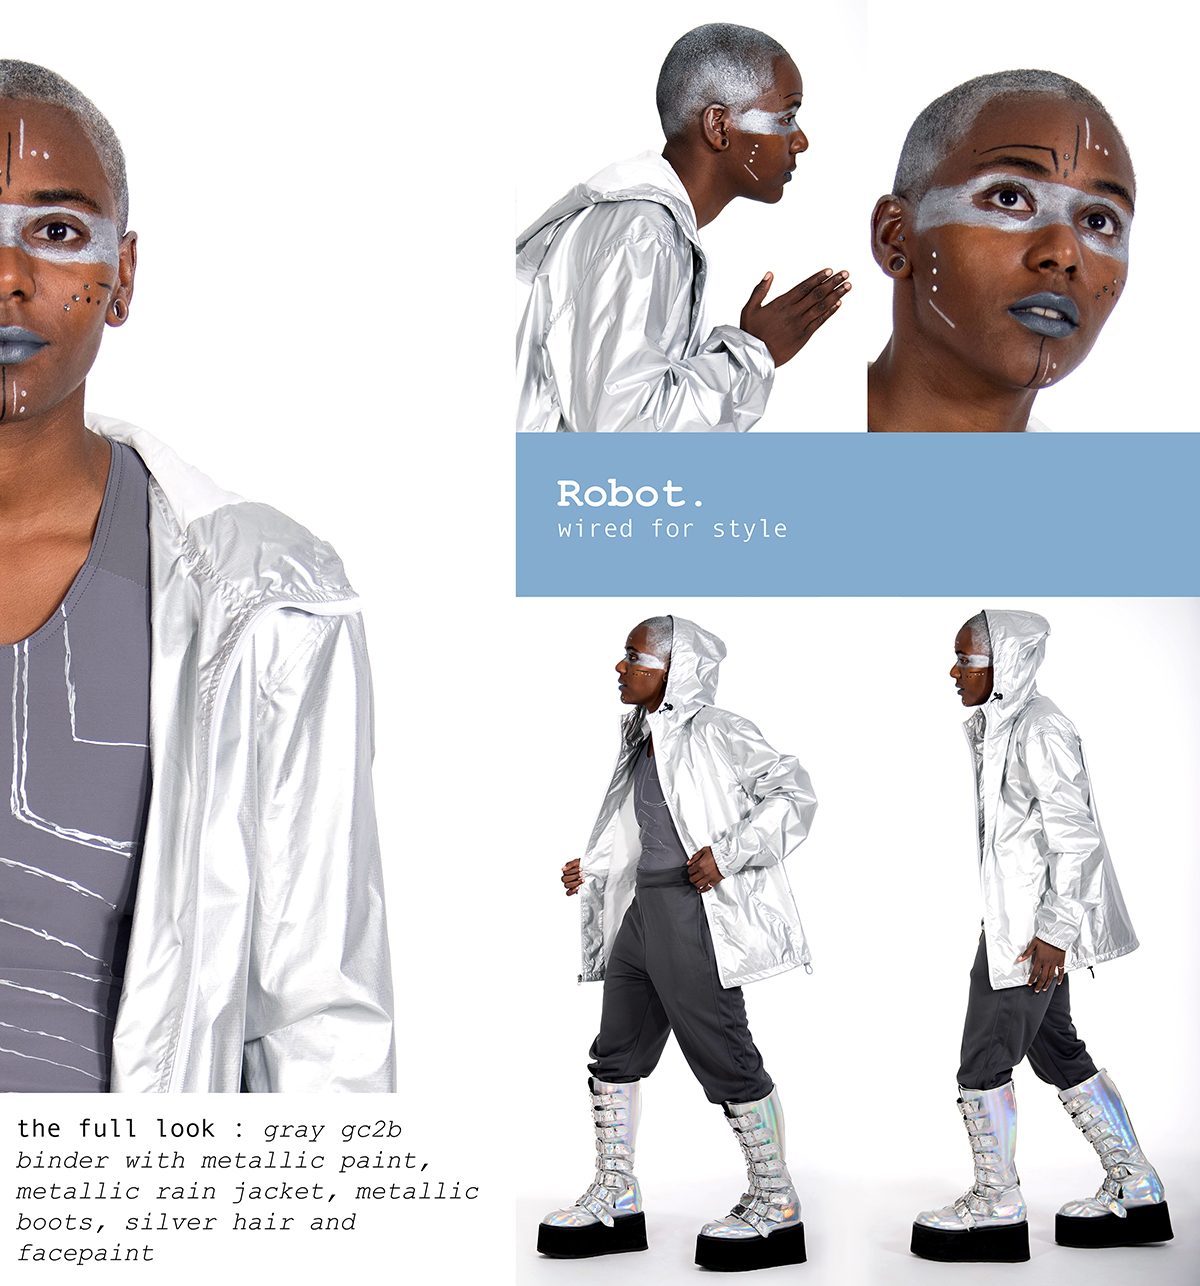 Robot. wired for style. the full look: 1 / Gray gc2b Binder with Metallic Paint 2 / Metallic Rain Jacket 3 / Metallic Boots 4 / Silver Hairspray 5 / Facepaint